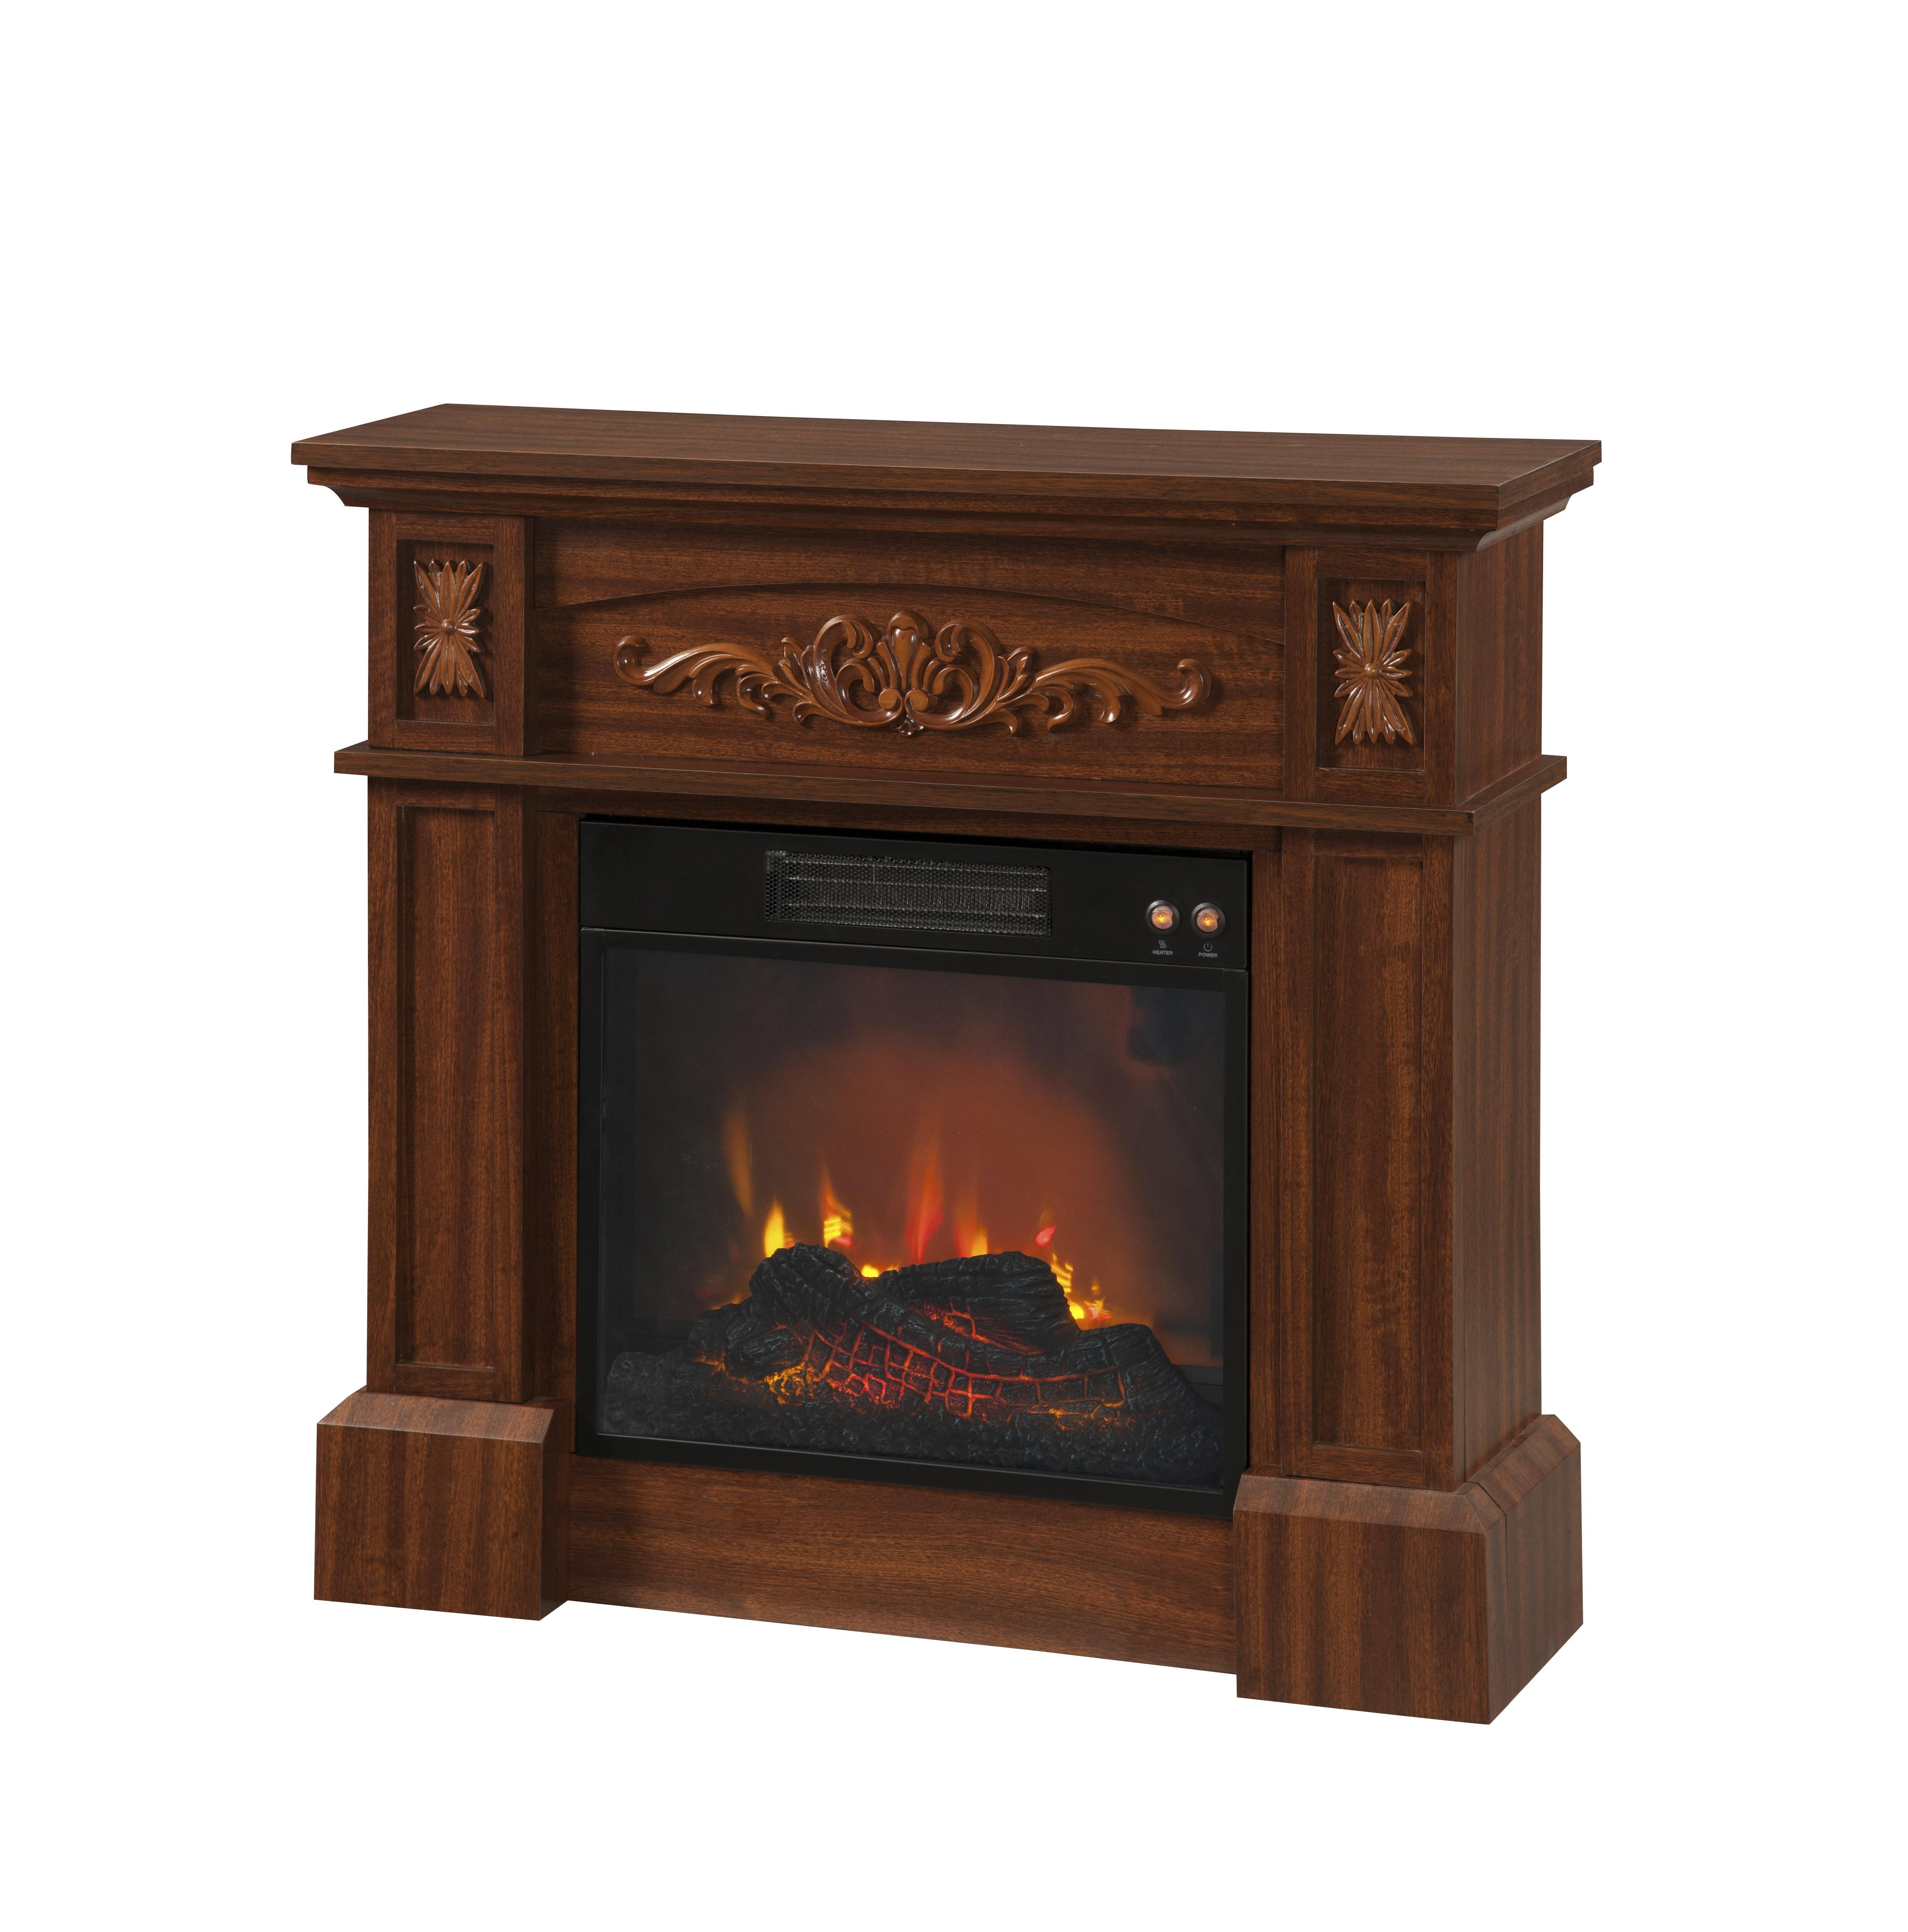 Essential Home Livingston Electric Fireplace